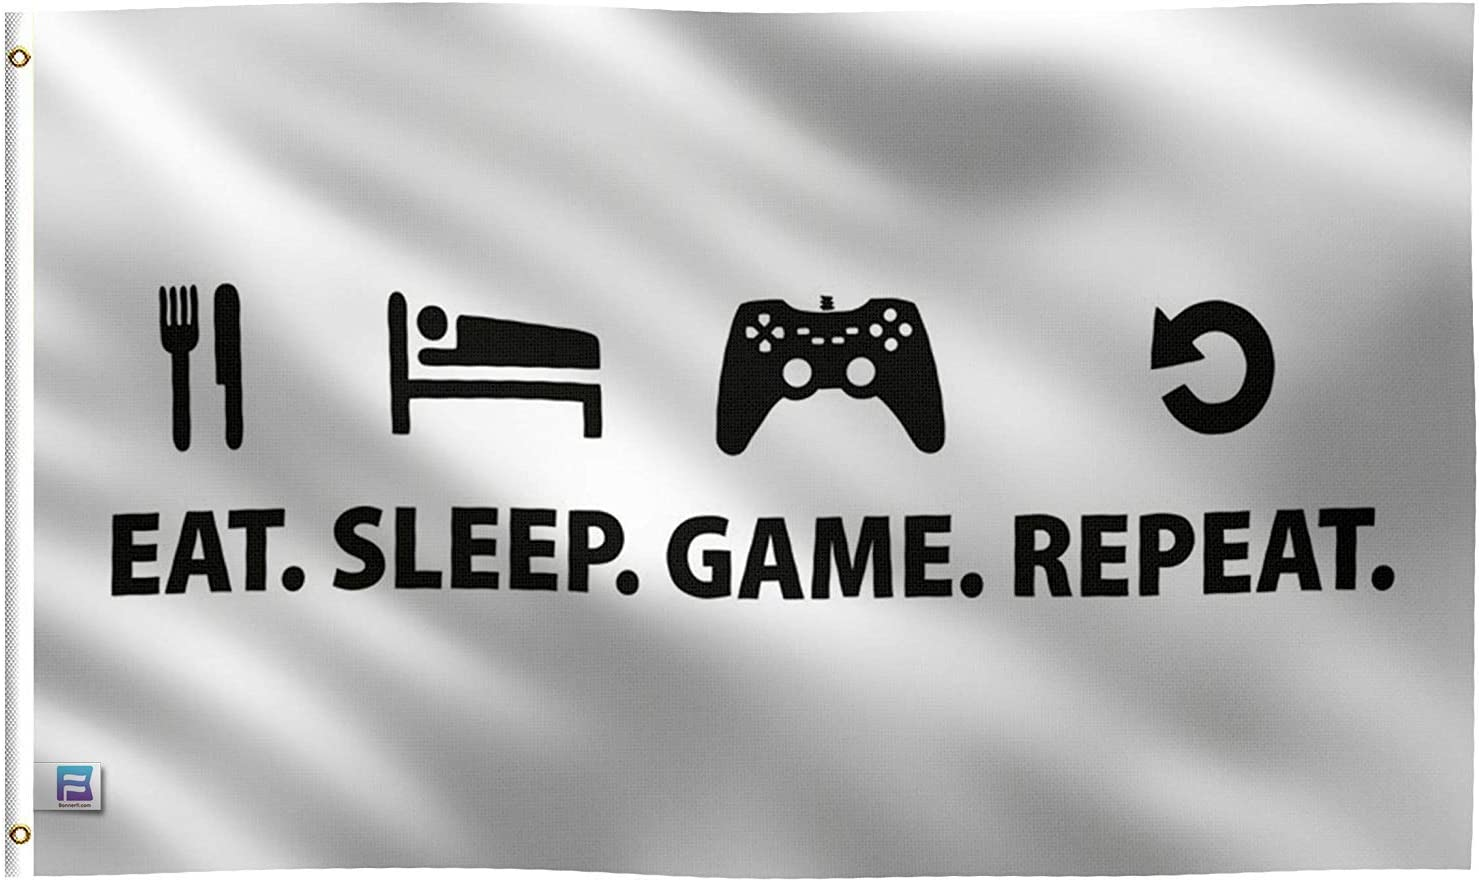 3x5 Foot Eat. Sleep. Game. Repeat. Flag: Single Sided 100% Polyester Banner, Canvas Header with 2 Grommets, UV Resistant Vibrant Digital Print, for Use Outdoor or Indoor